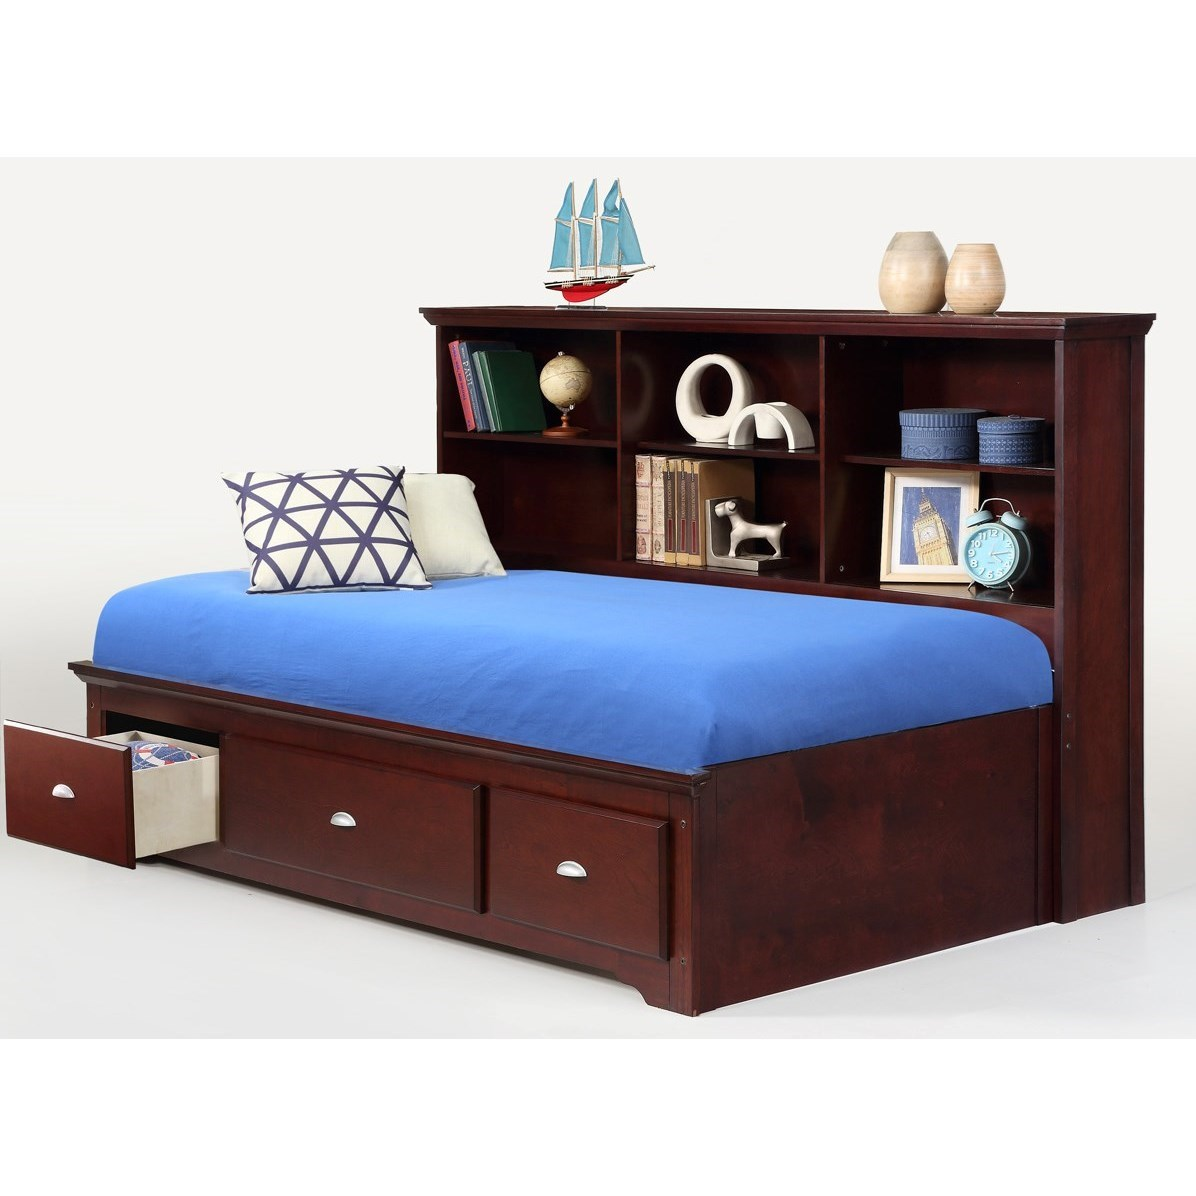 Bernards Ethan Twin Lounge Bed - Item Number: 3606-310